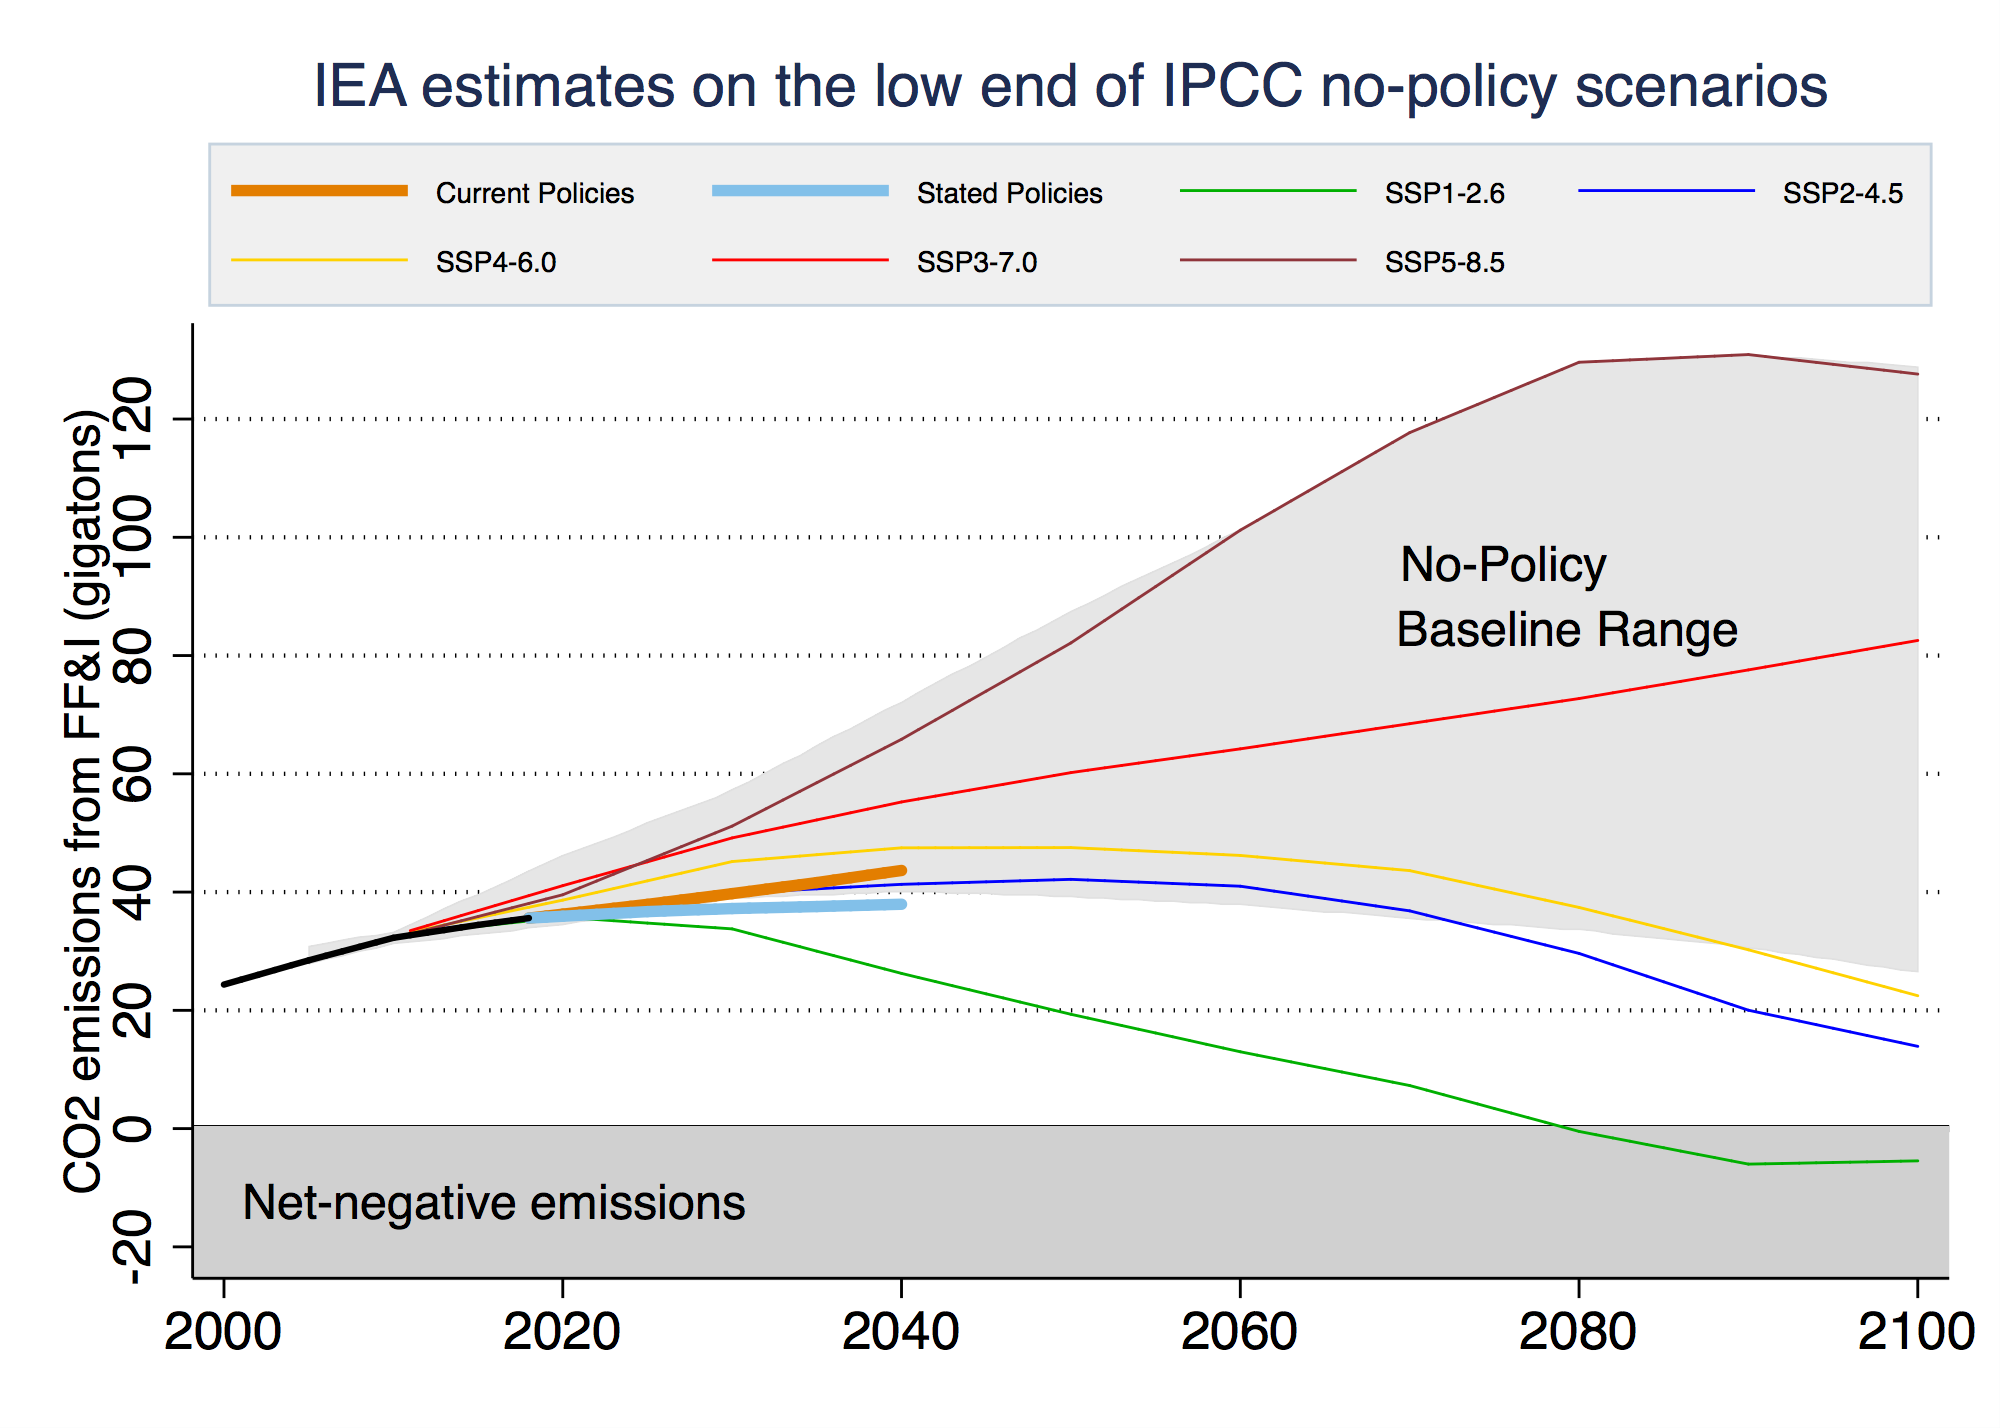 IEA estimates on the low end of IPCC no-policy scenarios